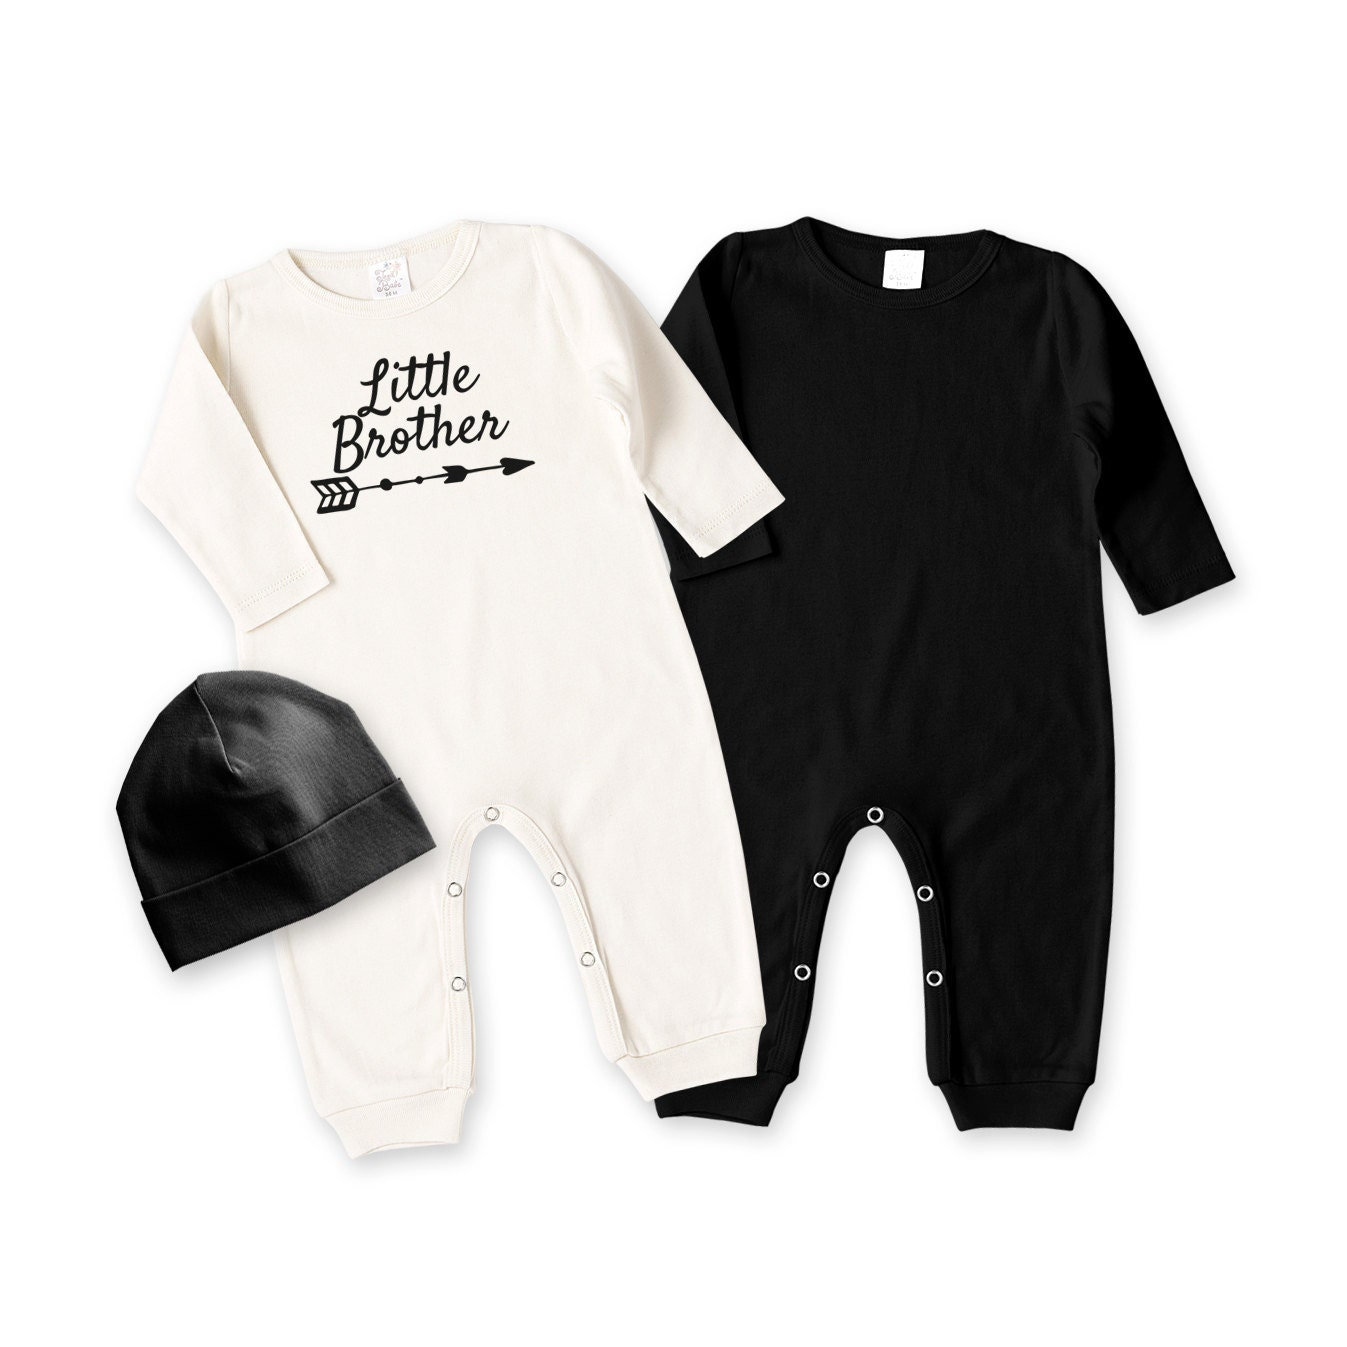 Black t shirt for babies - Newborn Little Brother Coming Home Outfit Black White Baby Outfit Baby Boy Romper